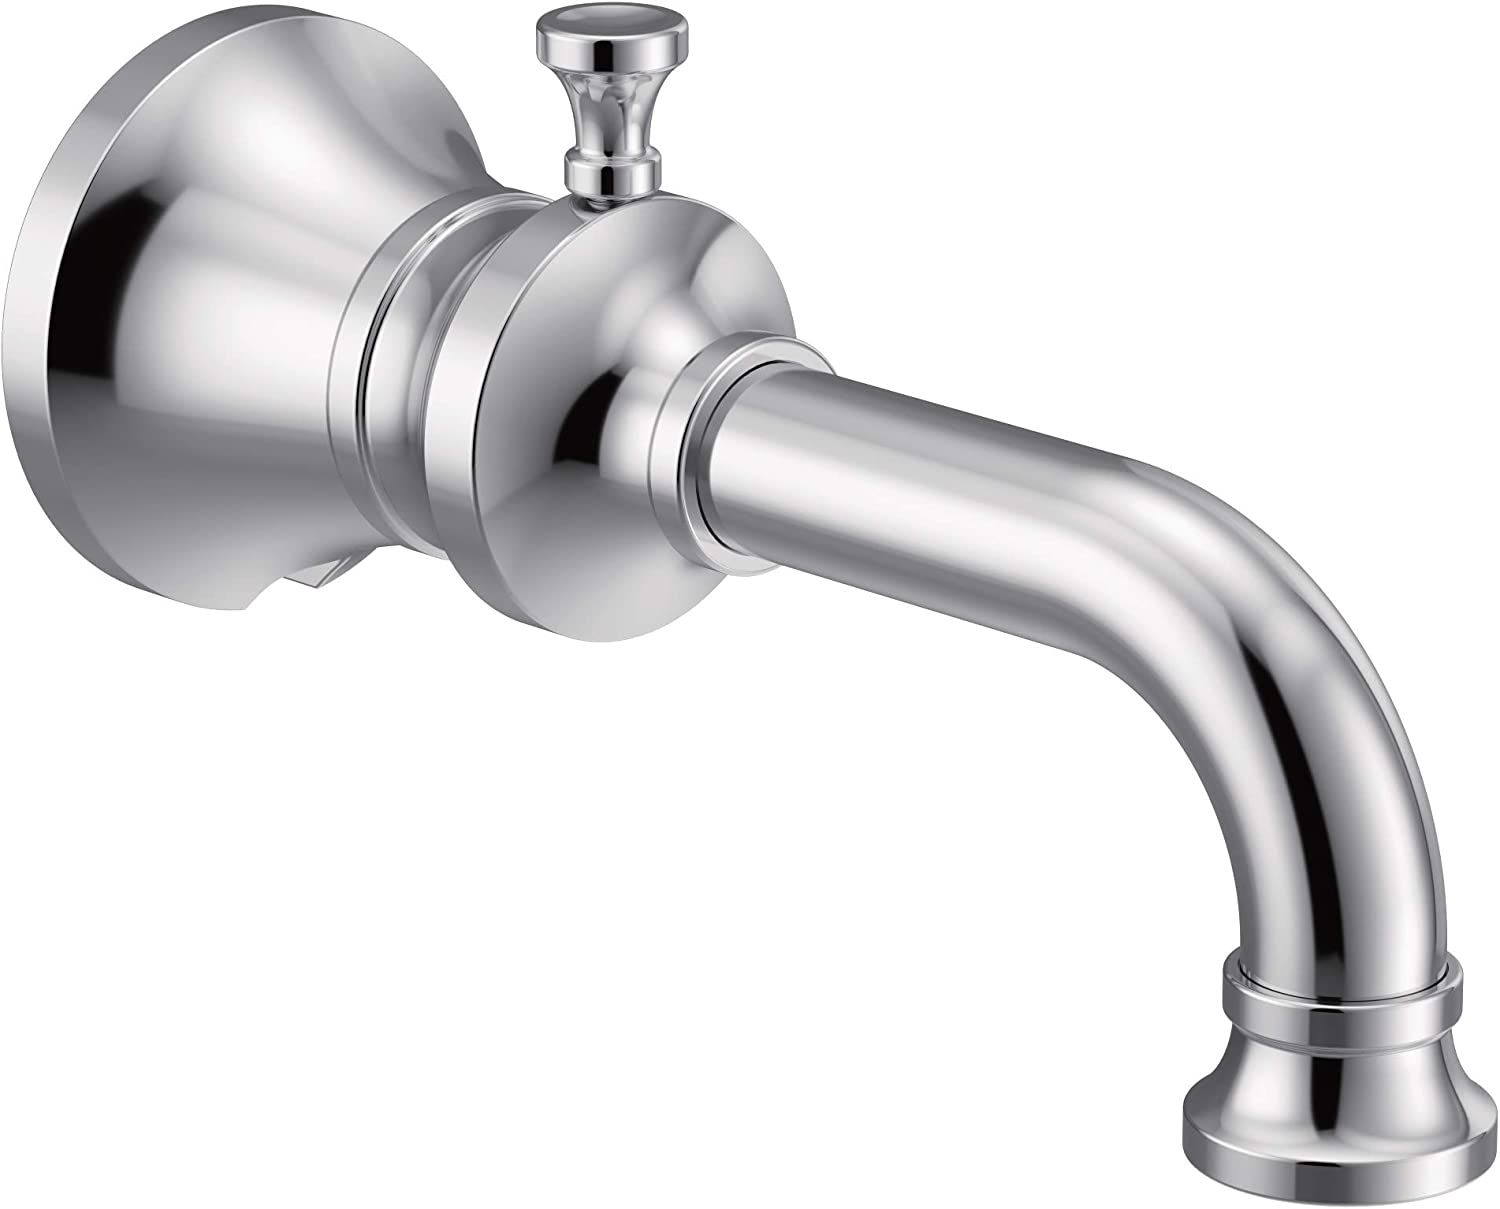 Moen S5000 Colinet Traditional Diverter Slip-fit Raleigh Genuine Free Shipping Mall with Spout Tub